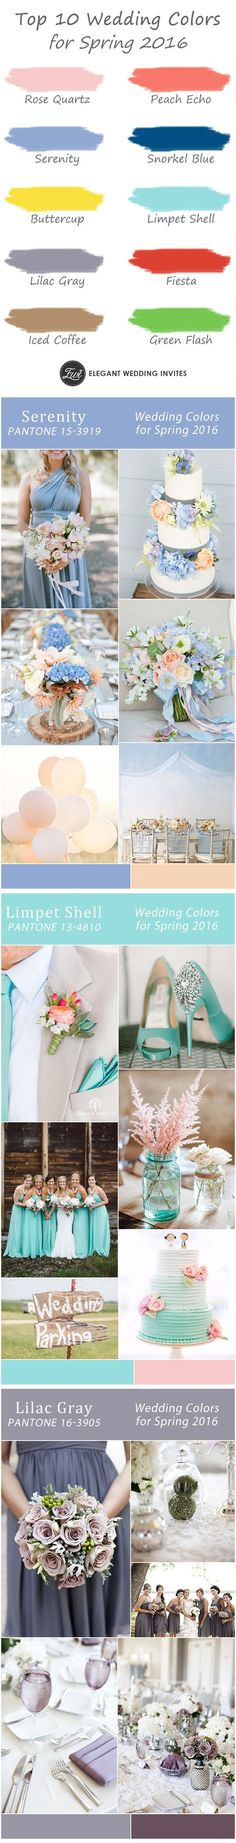 gorgeous 10 wedding color ideas for spring 2016 wedding trends-serenity light blue, peach echo coral, lilac gray, iced coffee and more frugal wedding Ideas #frugal #wedding